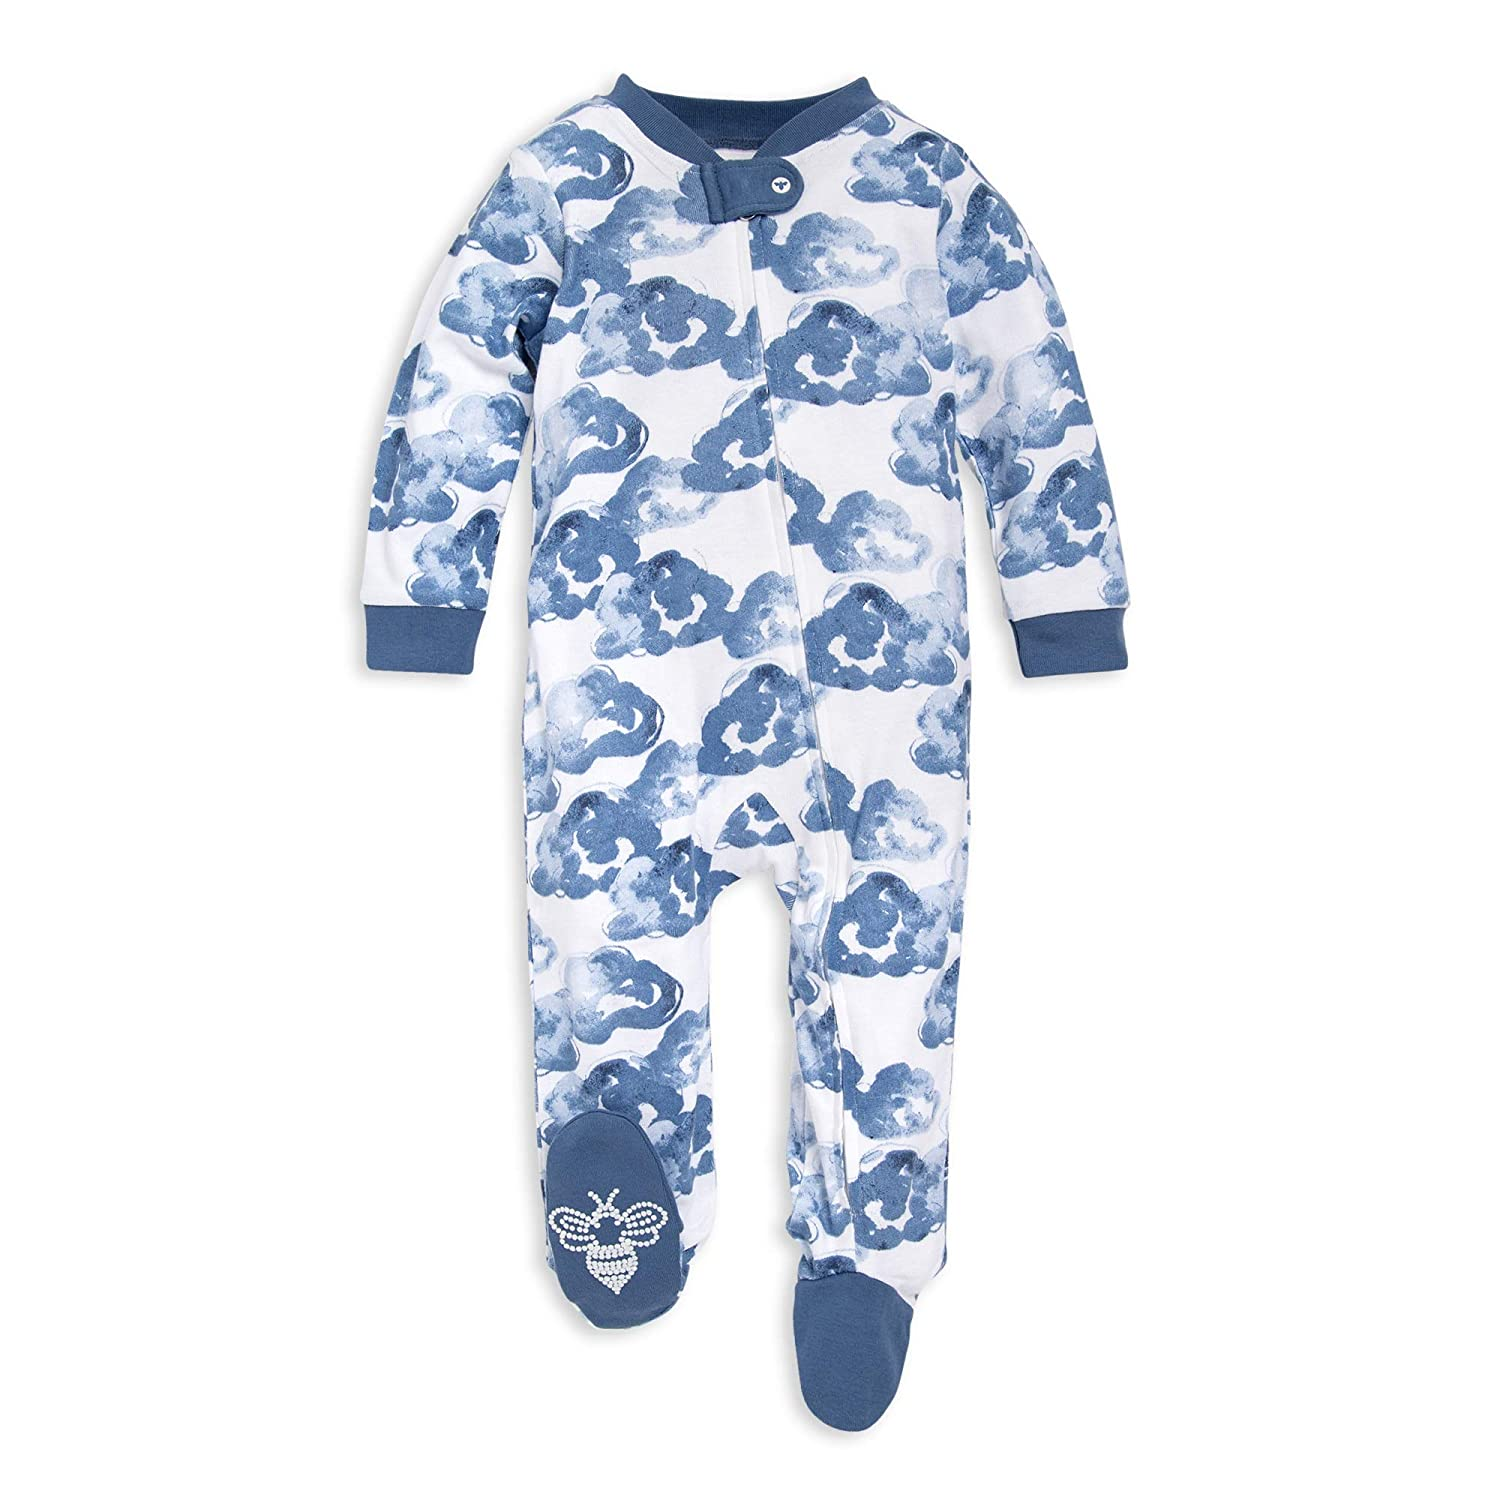 Burt's Bees Baby - Unisex Sleep & Play, Organic One-Piece Romper-Jumpsuit PJ, Zip Front Footed Pajama